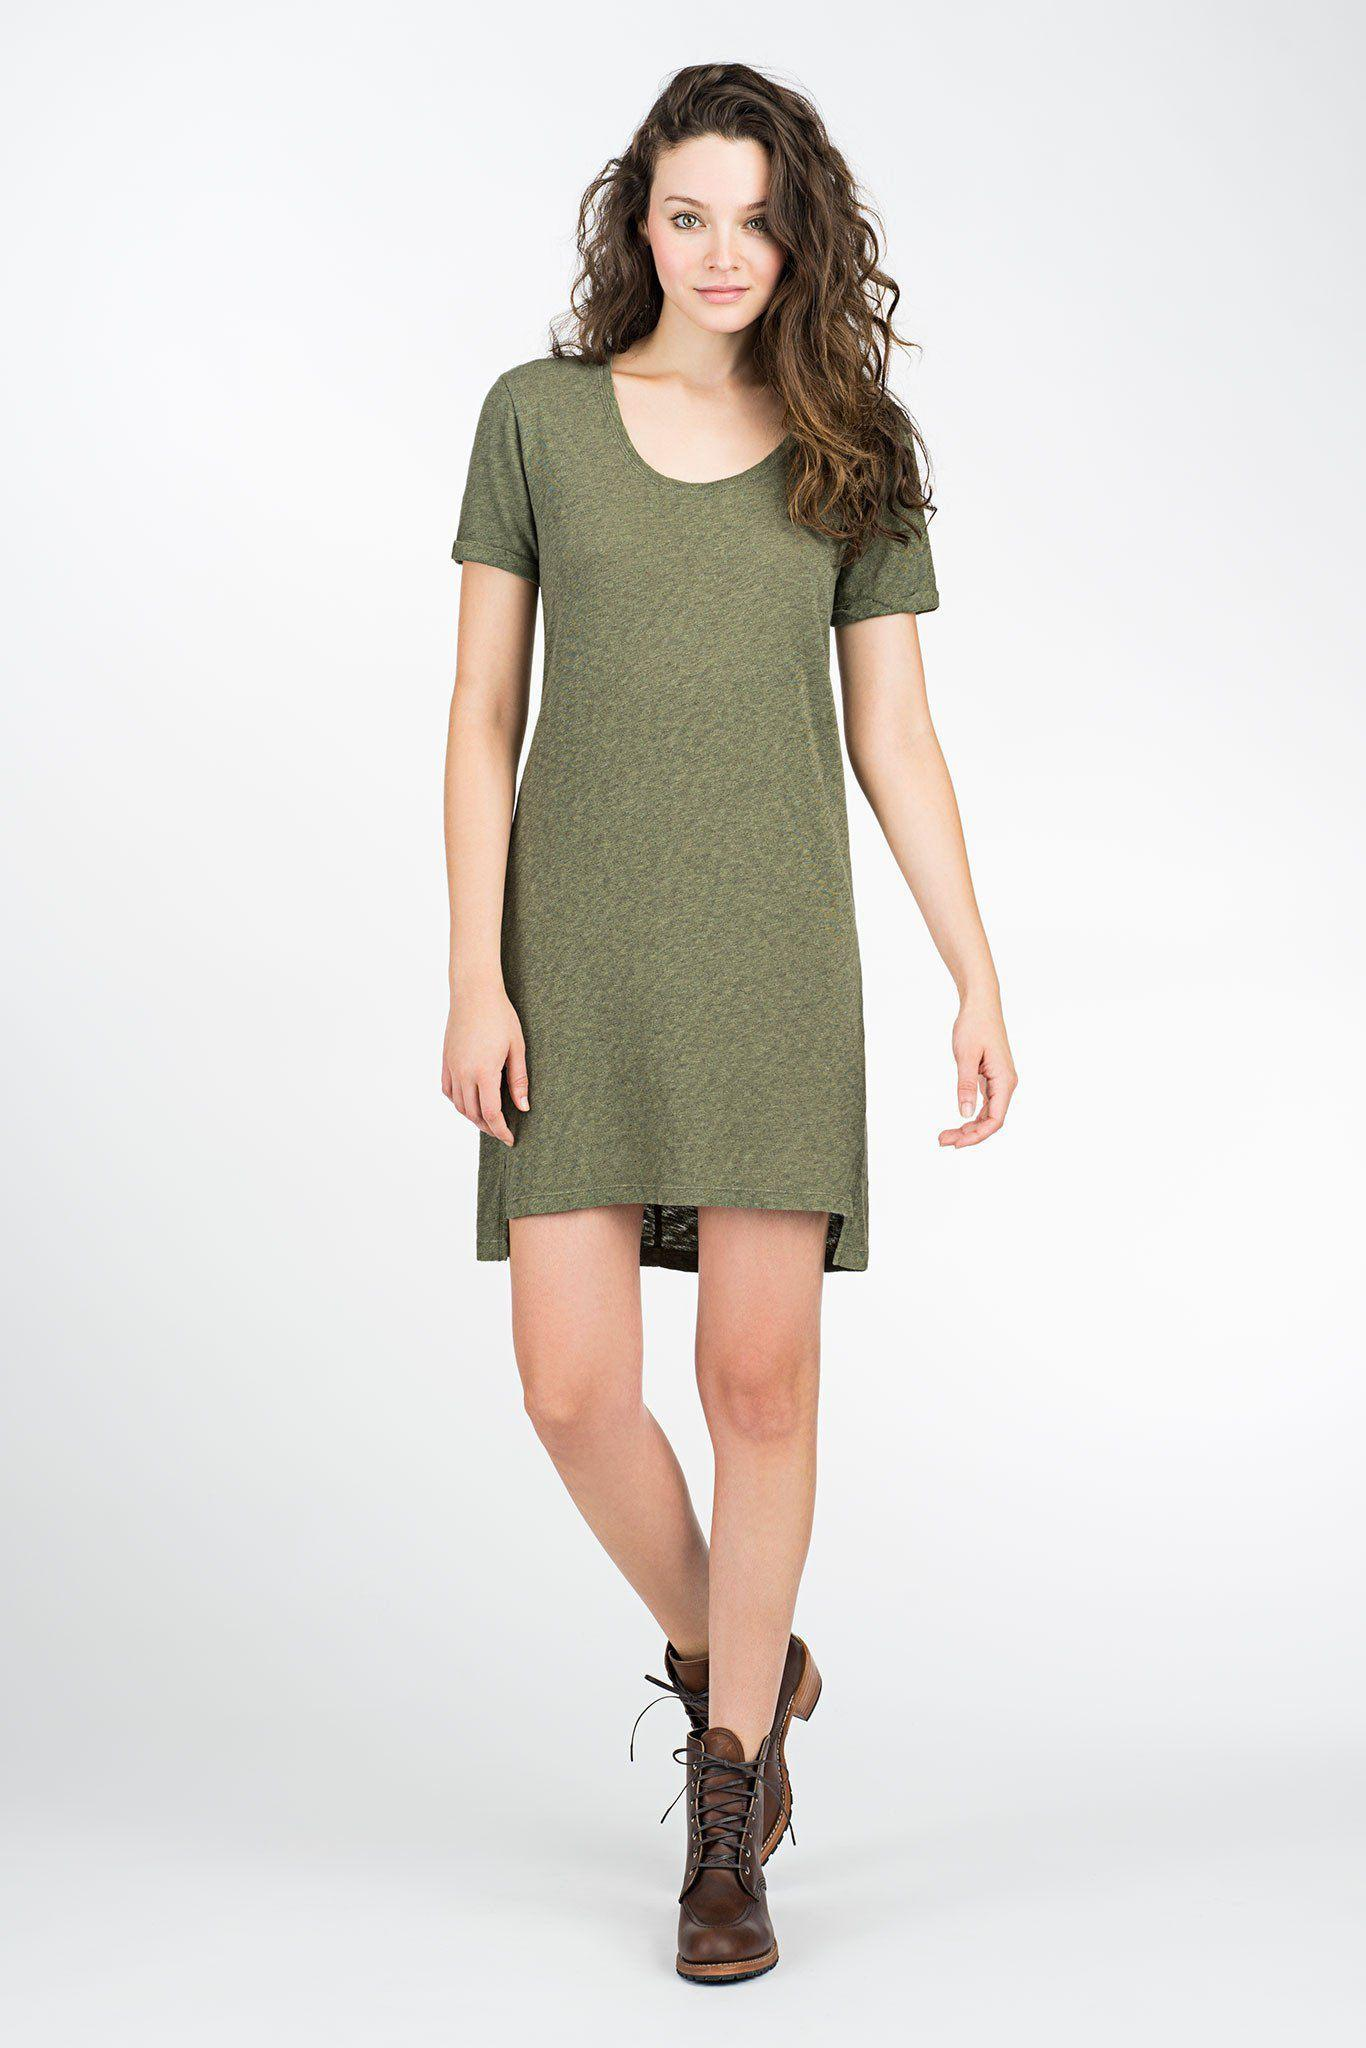 olive green t shirt dress new style 9b654 27f80 - schuitmakerlaw.com 6ae26bfe86